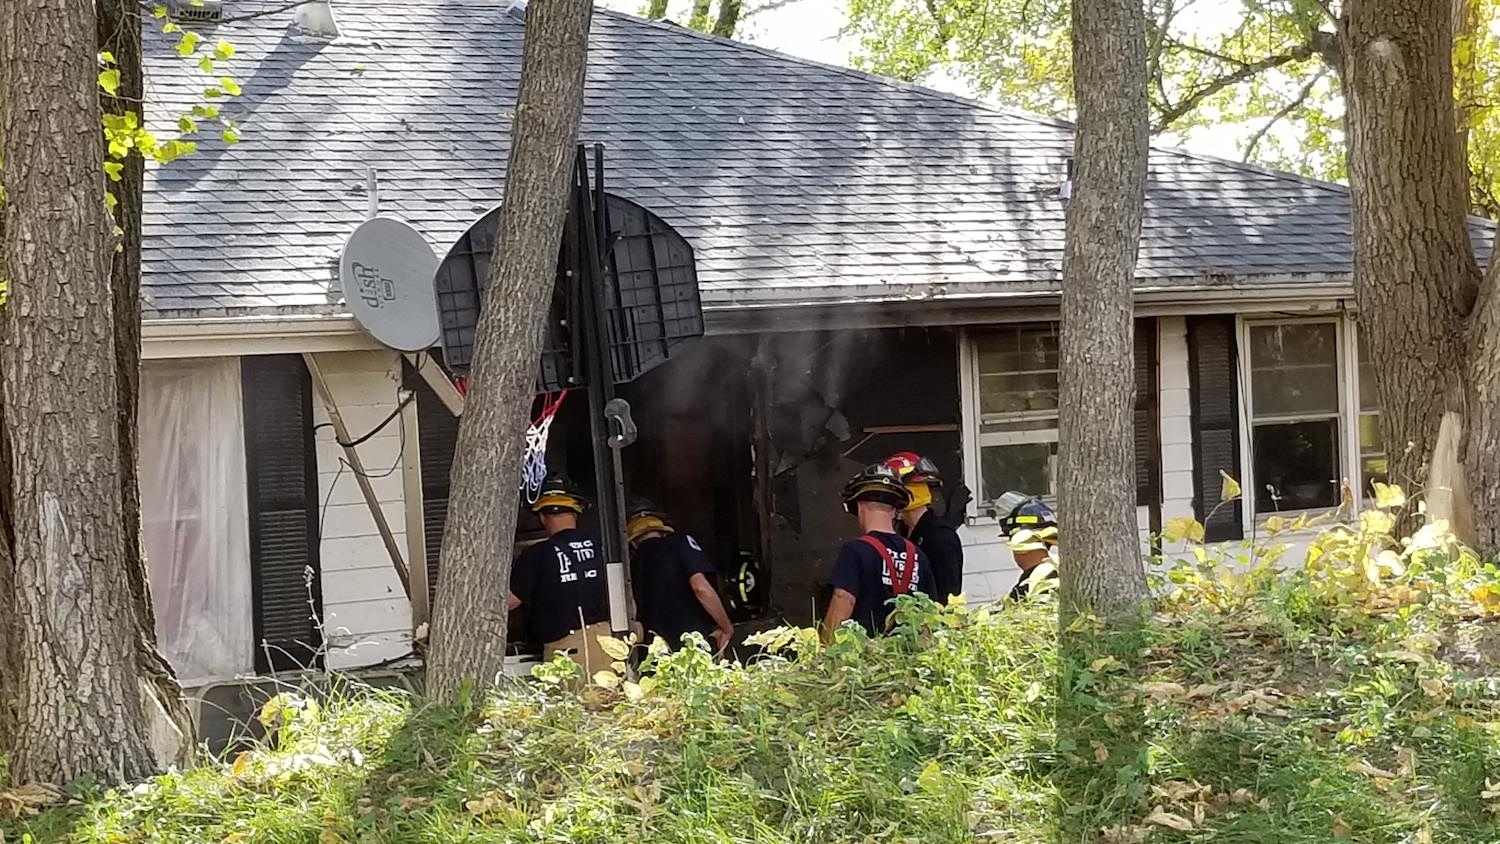 Clothes dryer causes fire at 2005 West 14th in Sioux City Fire Department says